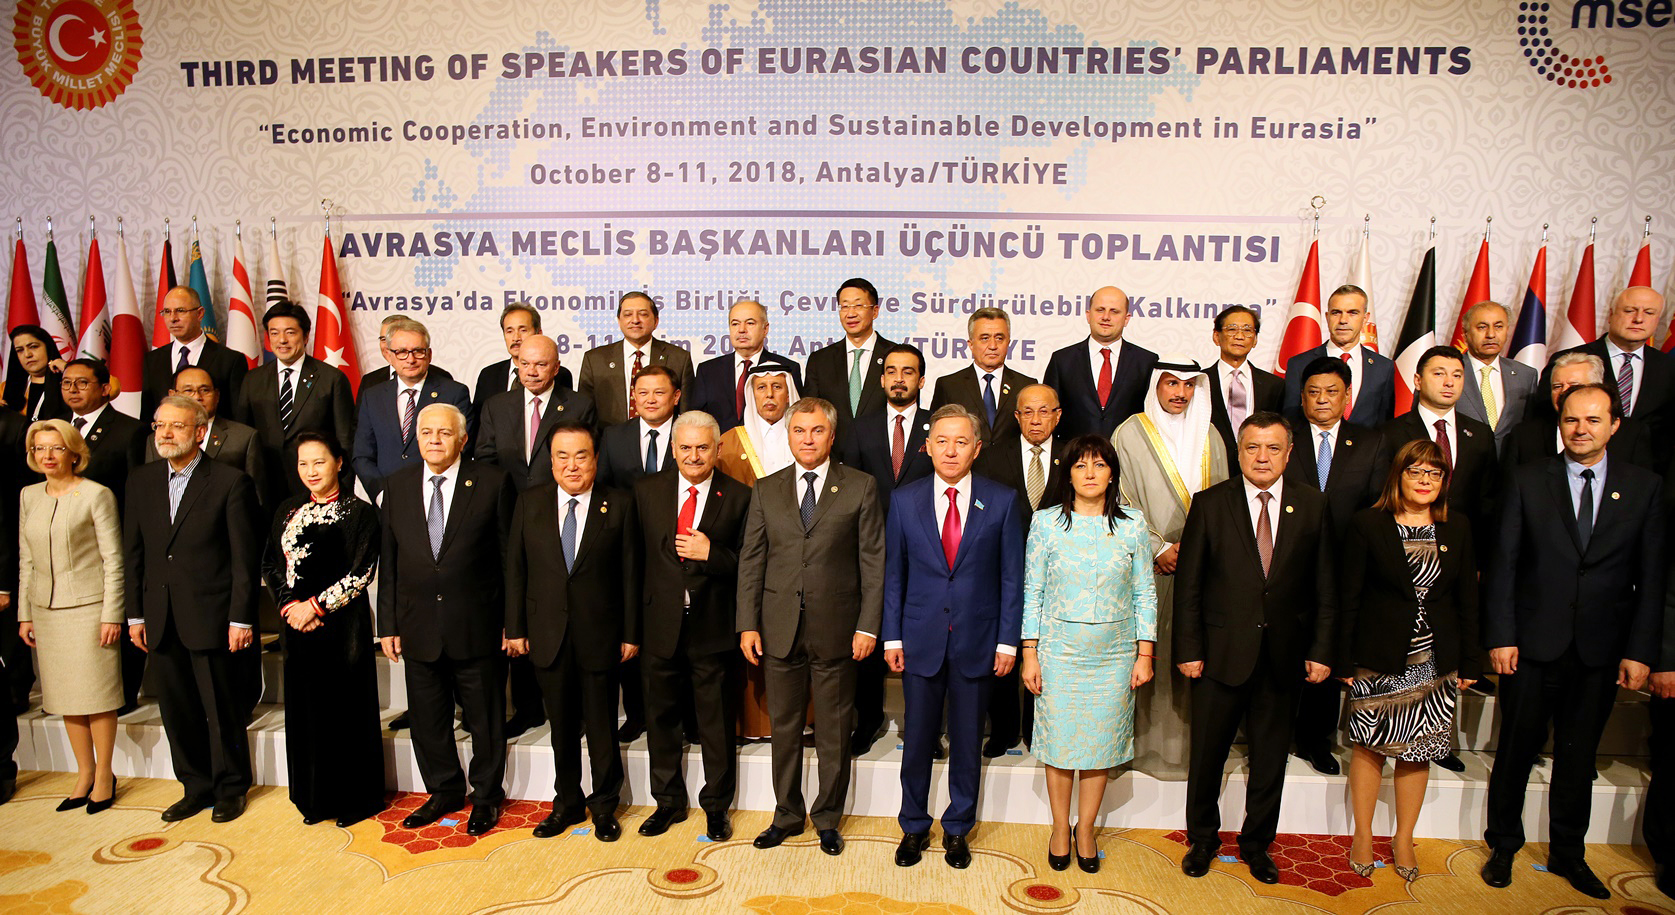 The Third Meeting of Speakers of Eurasian Countries Parliaments